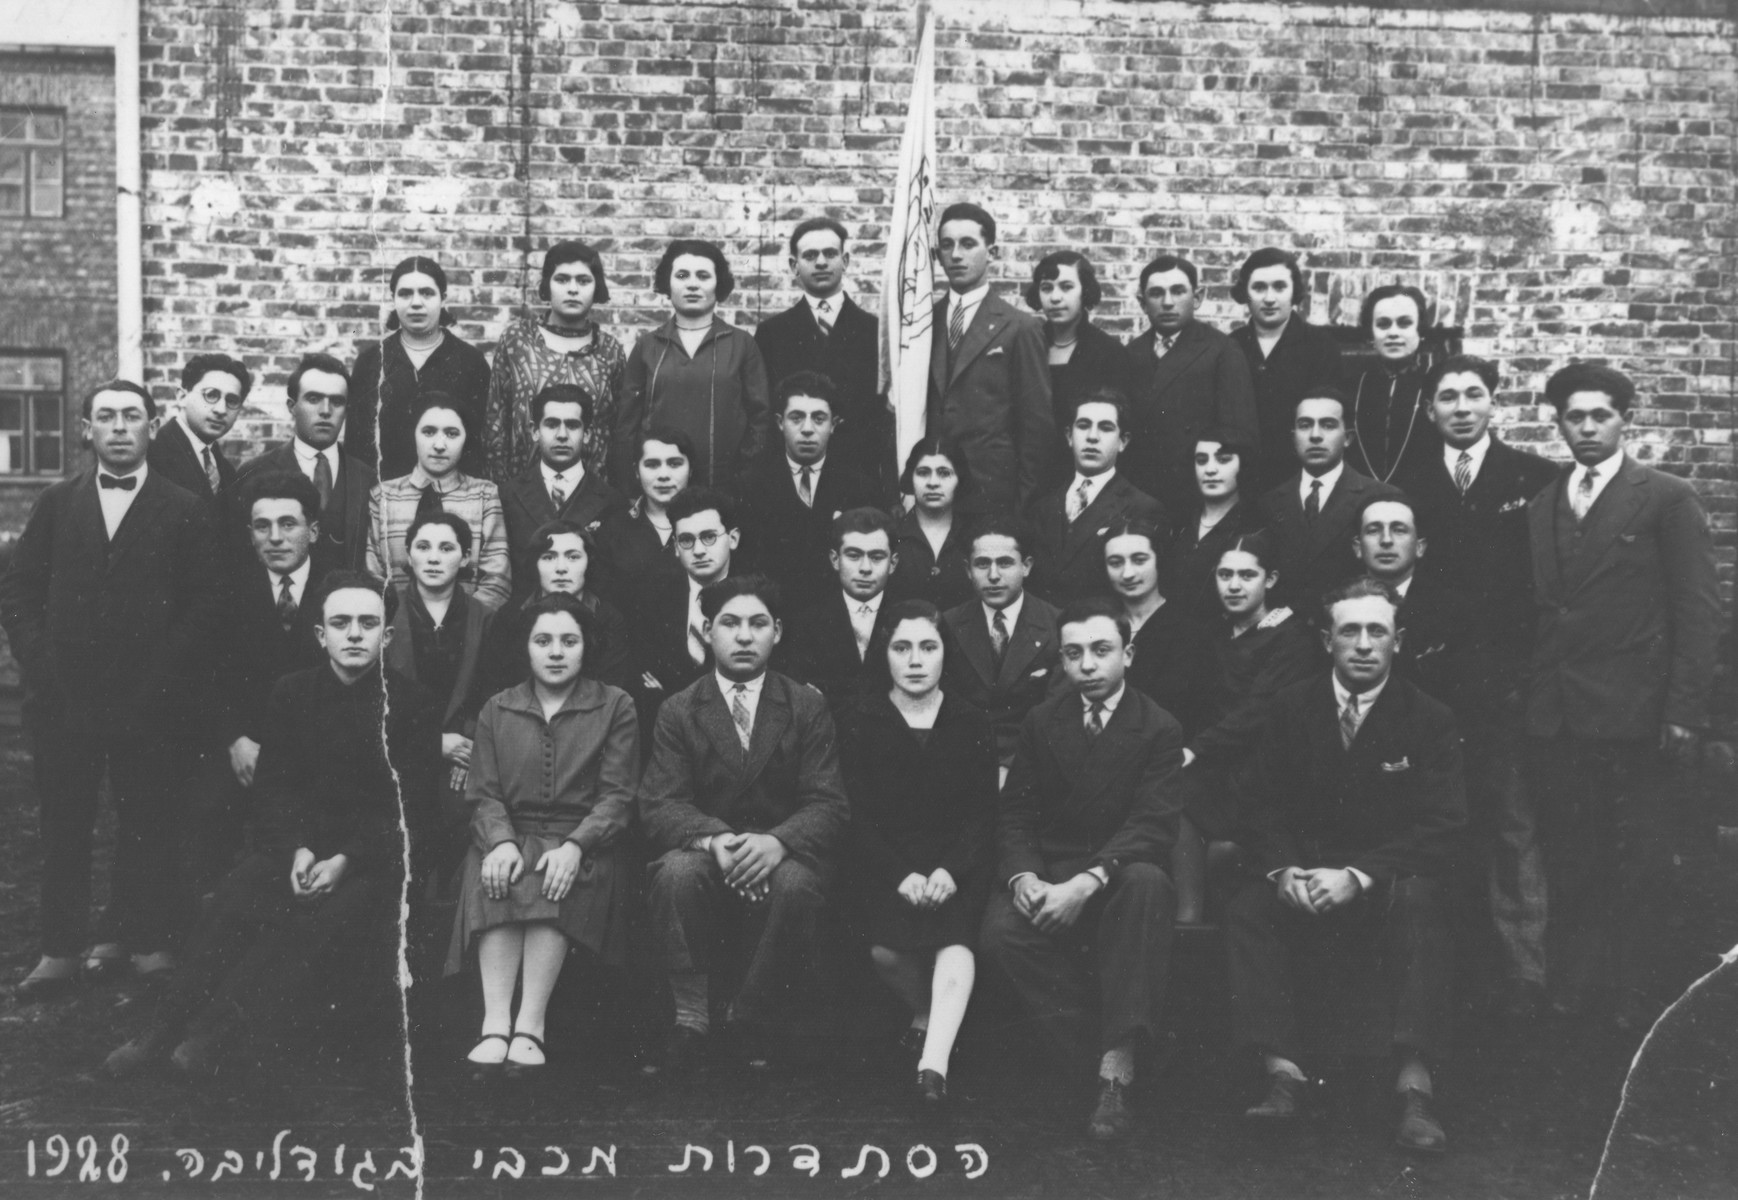 Group portrait of members of the Maccabi Jewish youth organization in Godlewo, Poland.